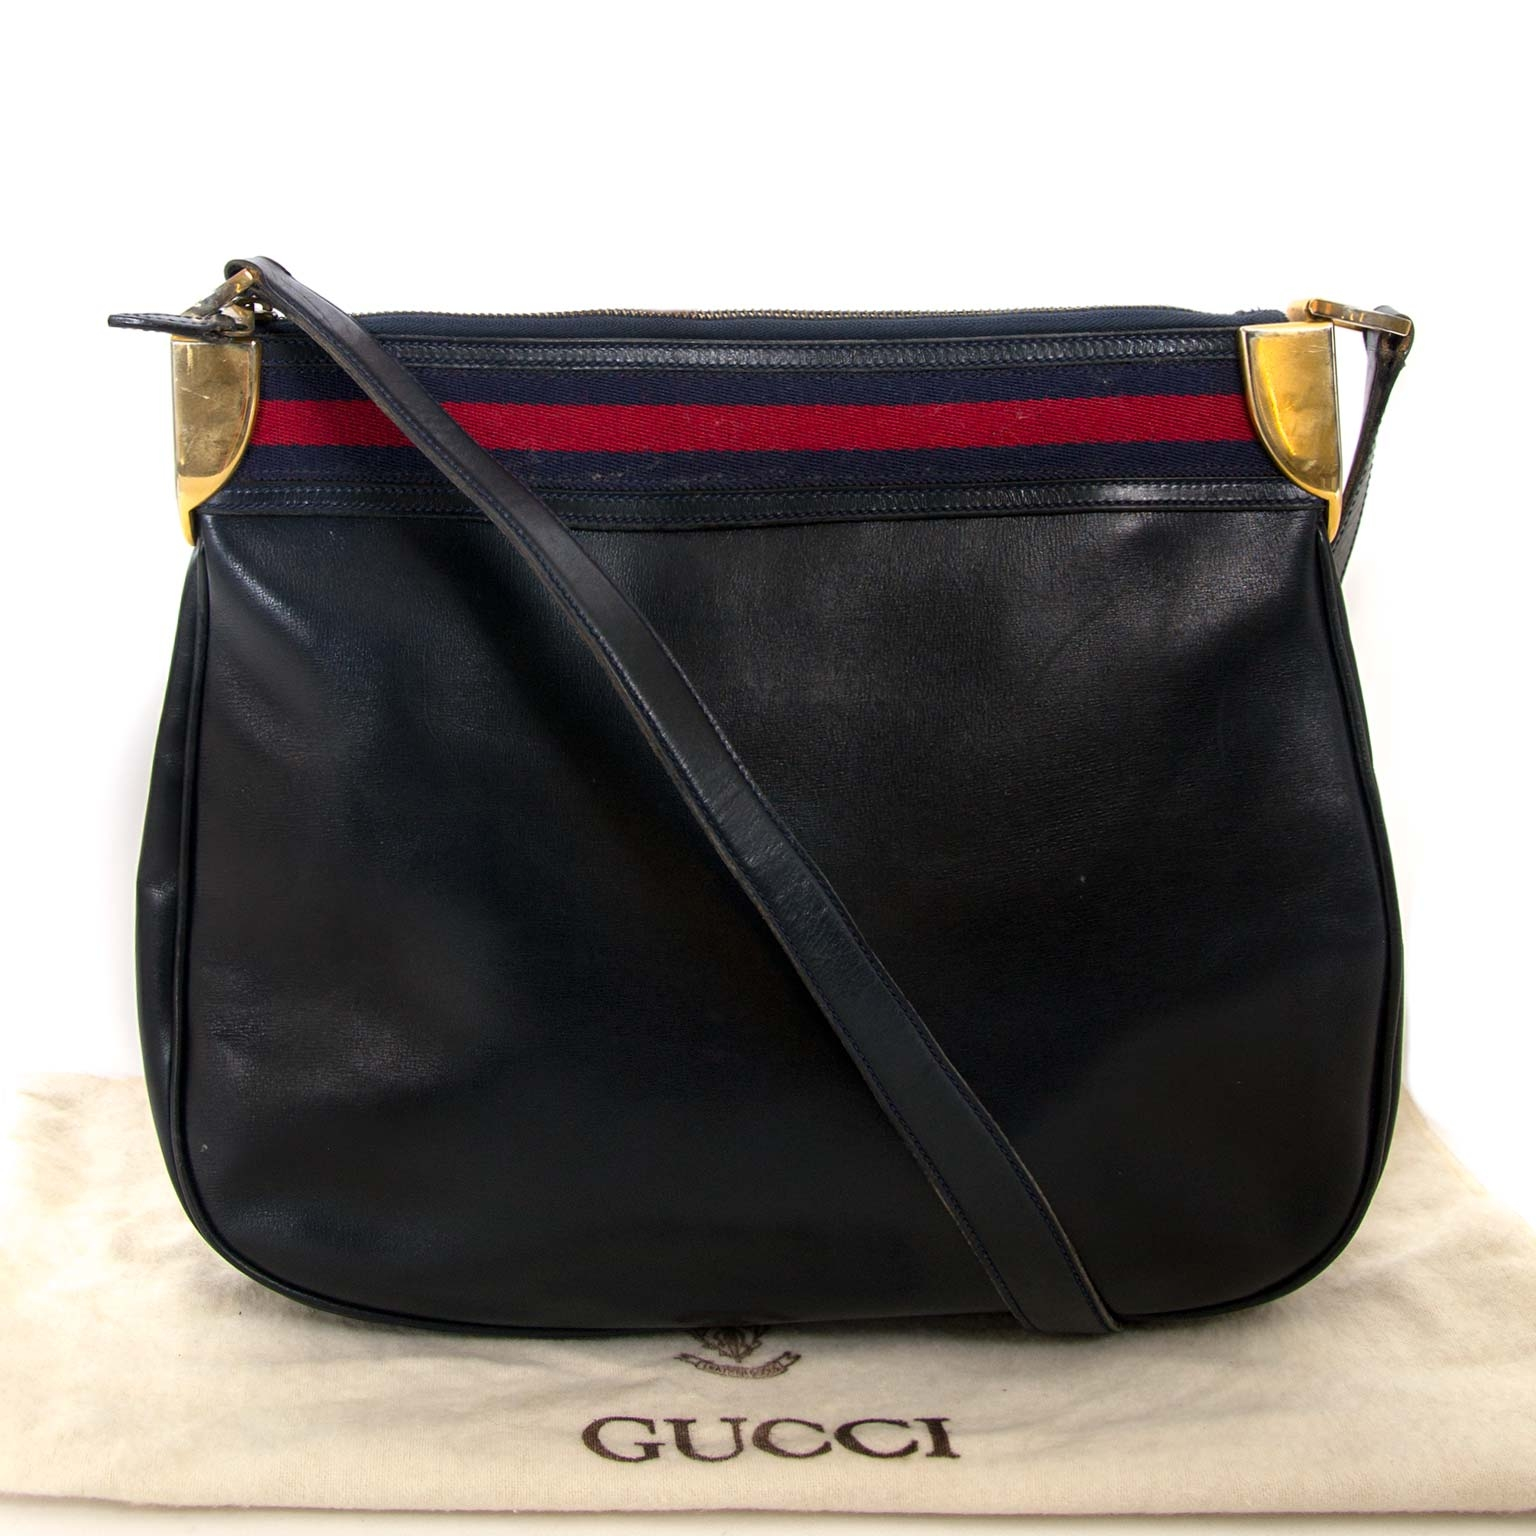 8b8754204e4f8 ... gucci vintage blue web shoulder bag now for sale at labellov vintage  fashion webshop belgium